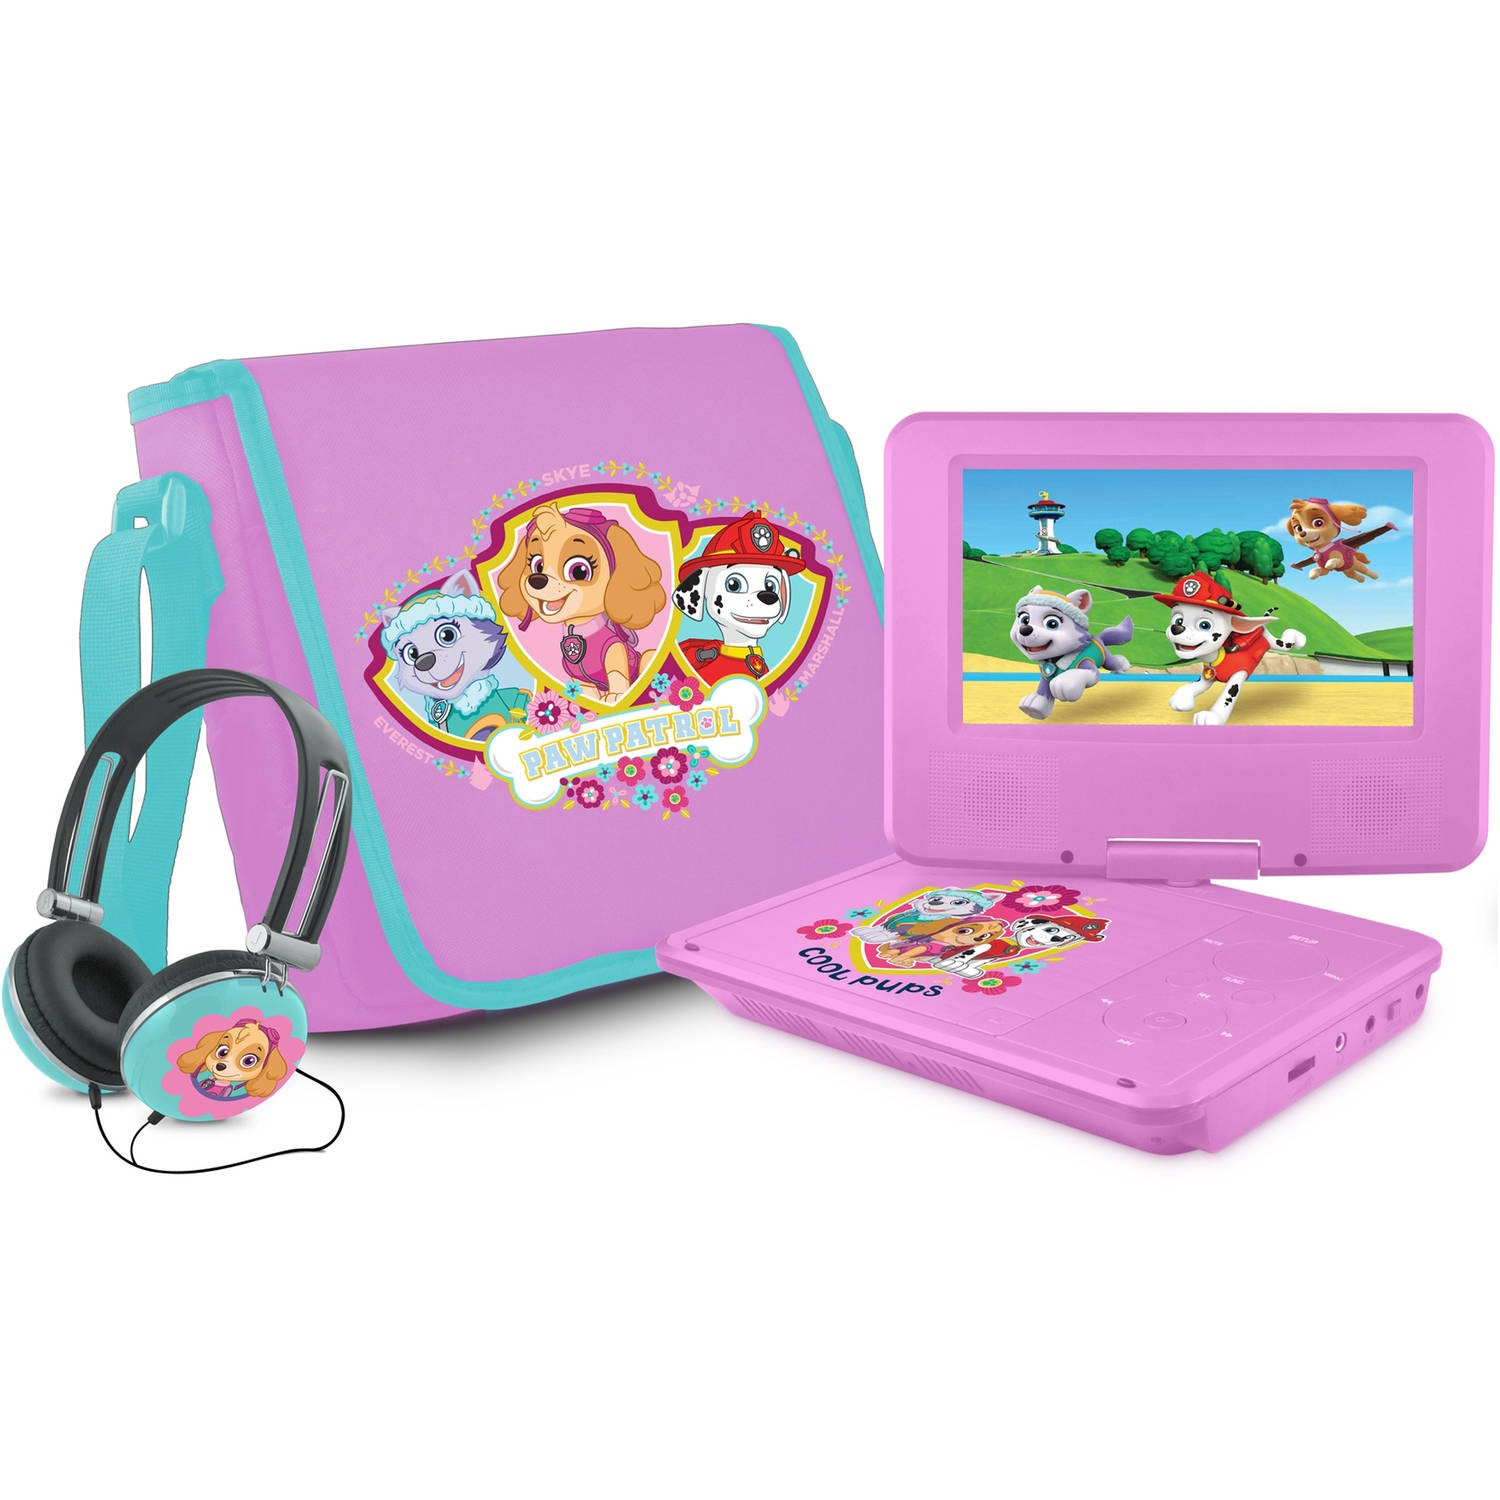 "Paw patrol 7"" portable dvd player with carrying bag and headphones, pink"